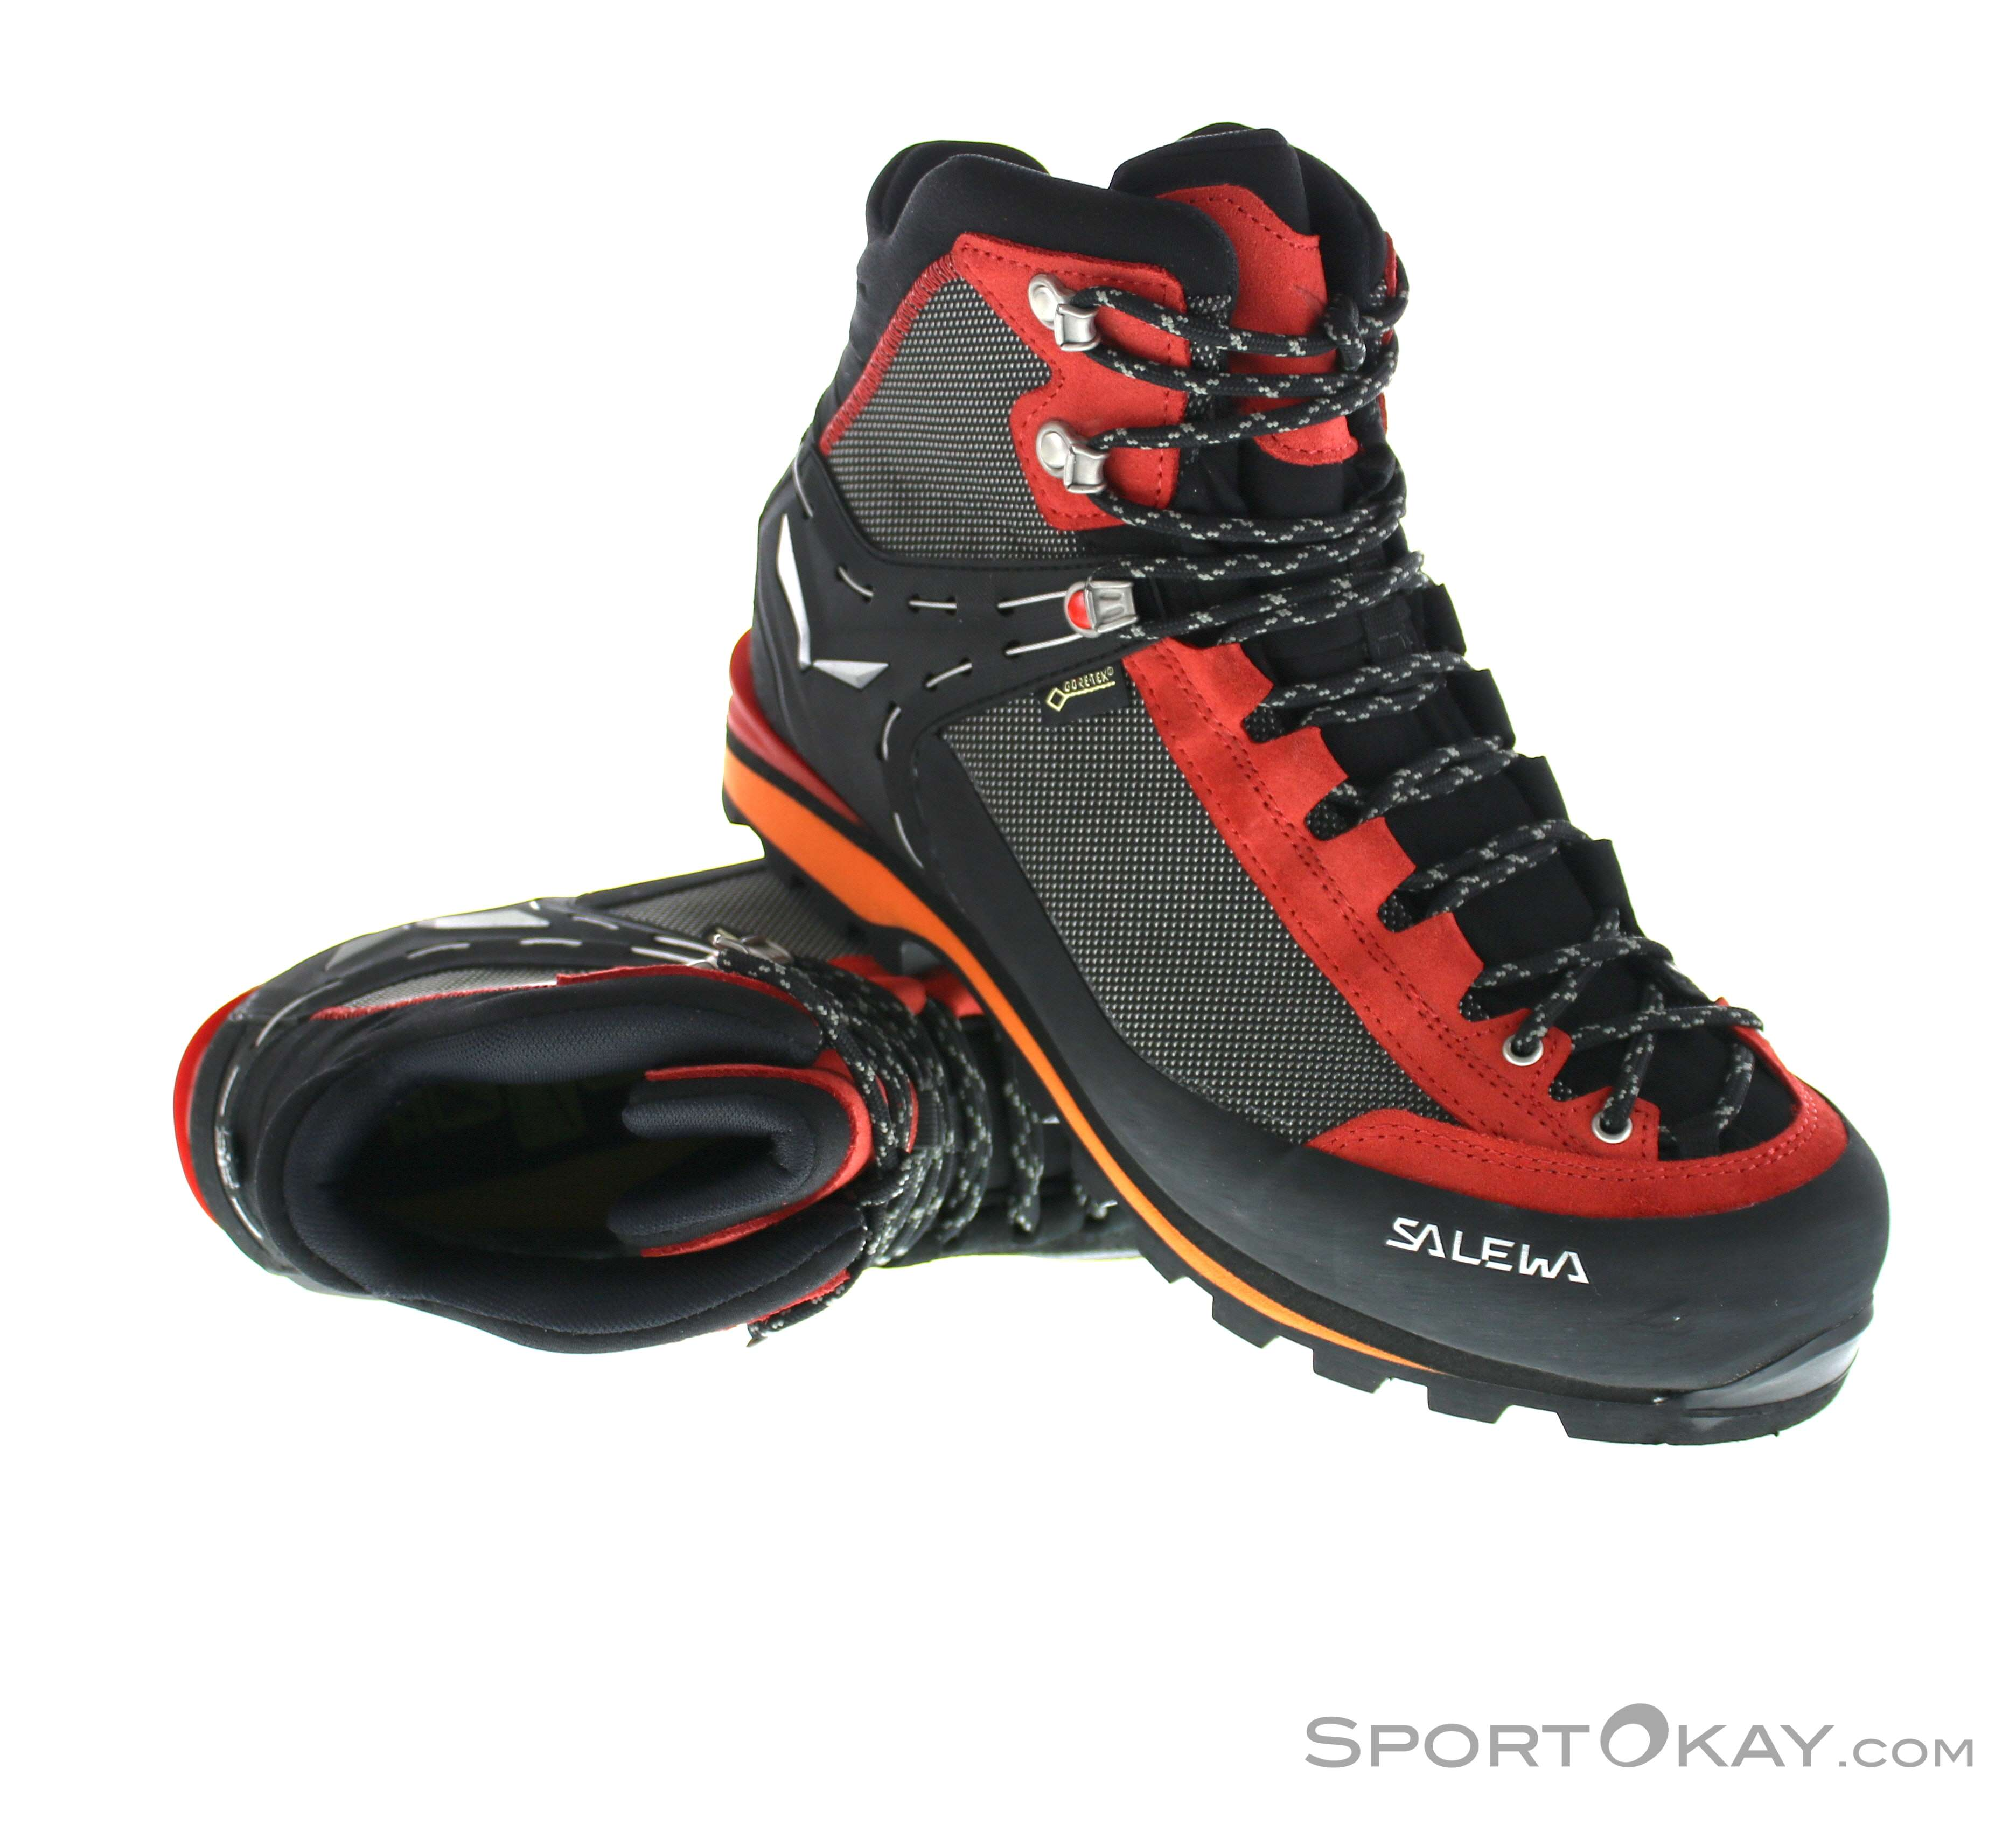 Salewa Crow GTX Mens Mountaineering Boots Gore-Tex - Mountaineering ... 81fd0495541